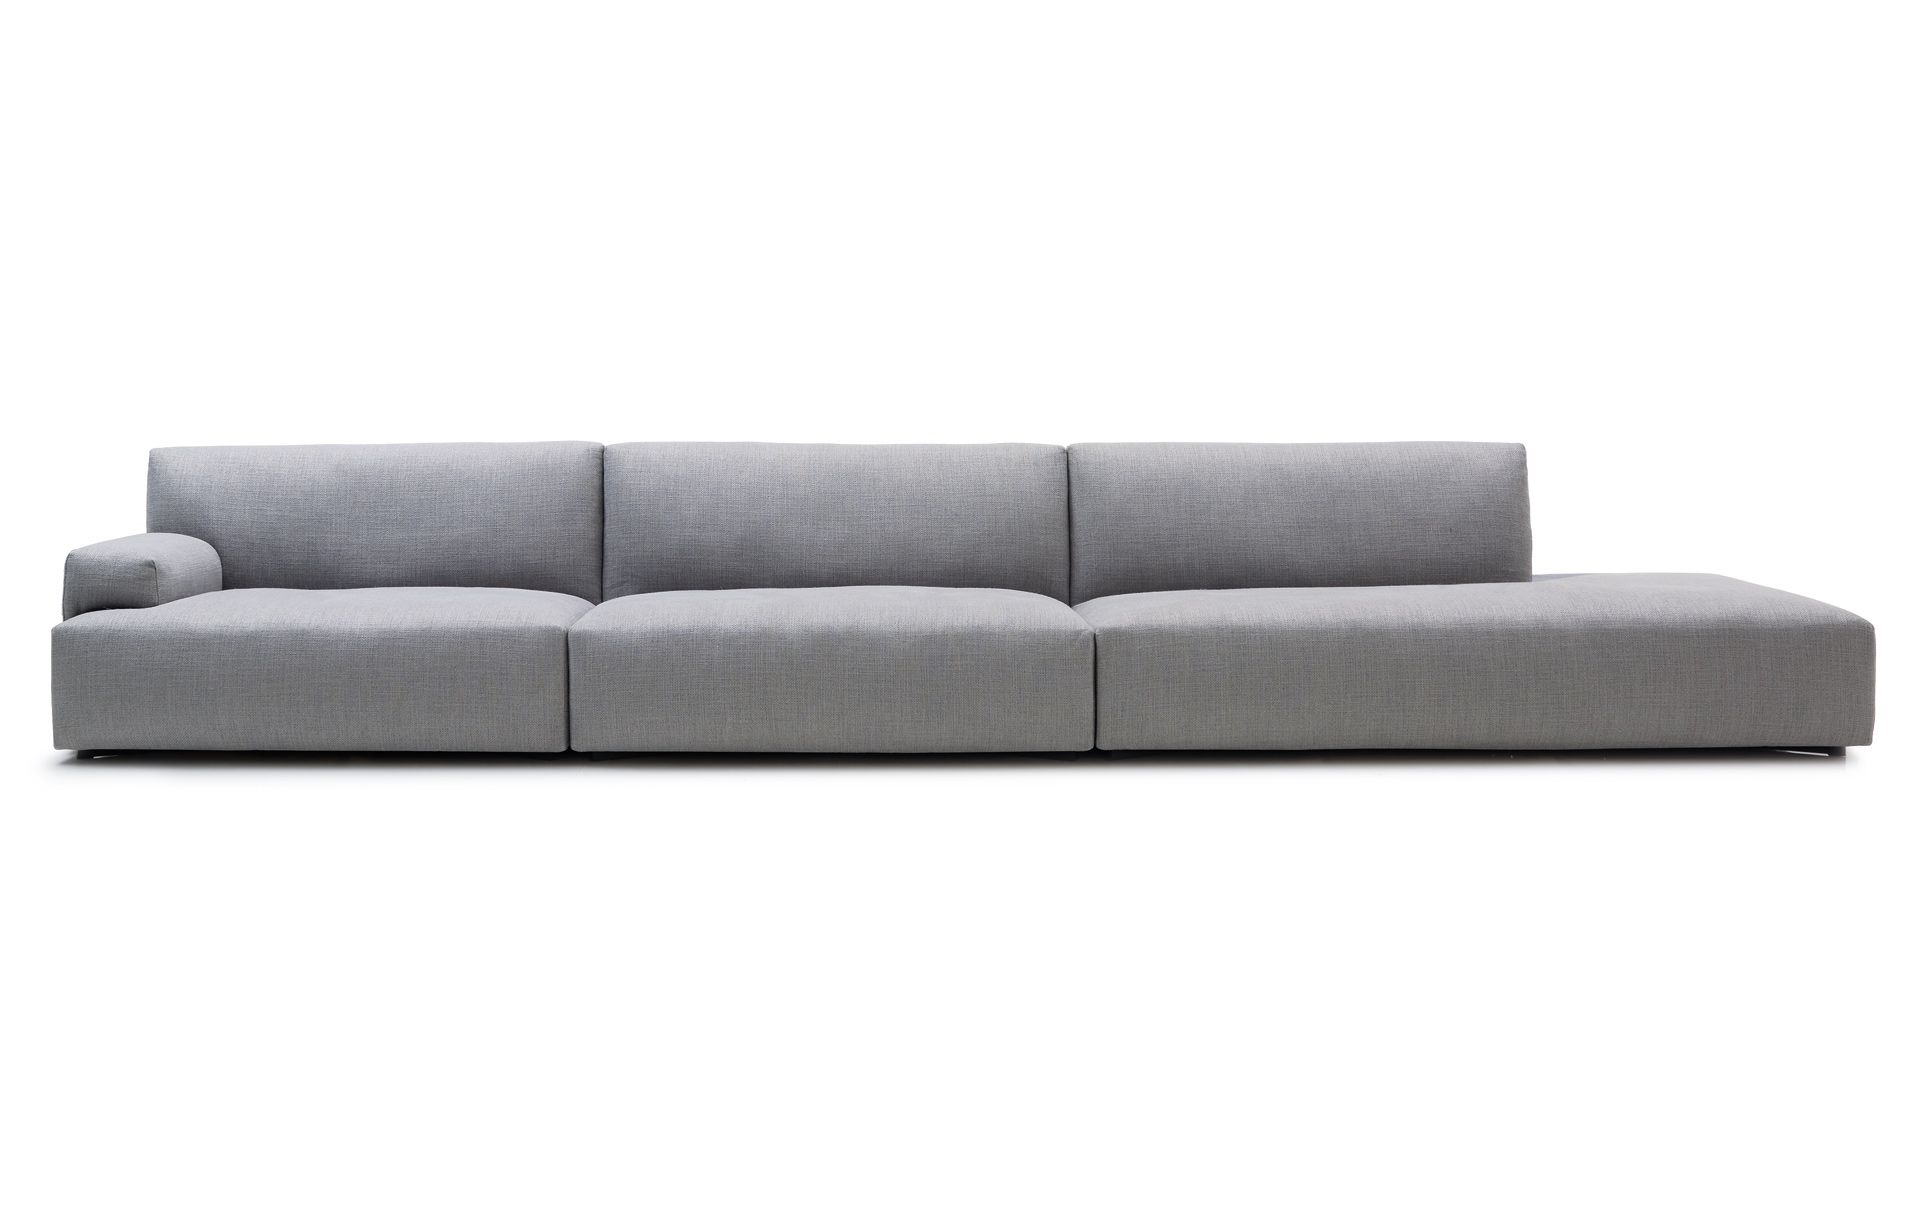 Poliform Sofa Poliform Sofa Sofa Design Sofa Furniture